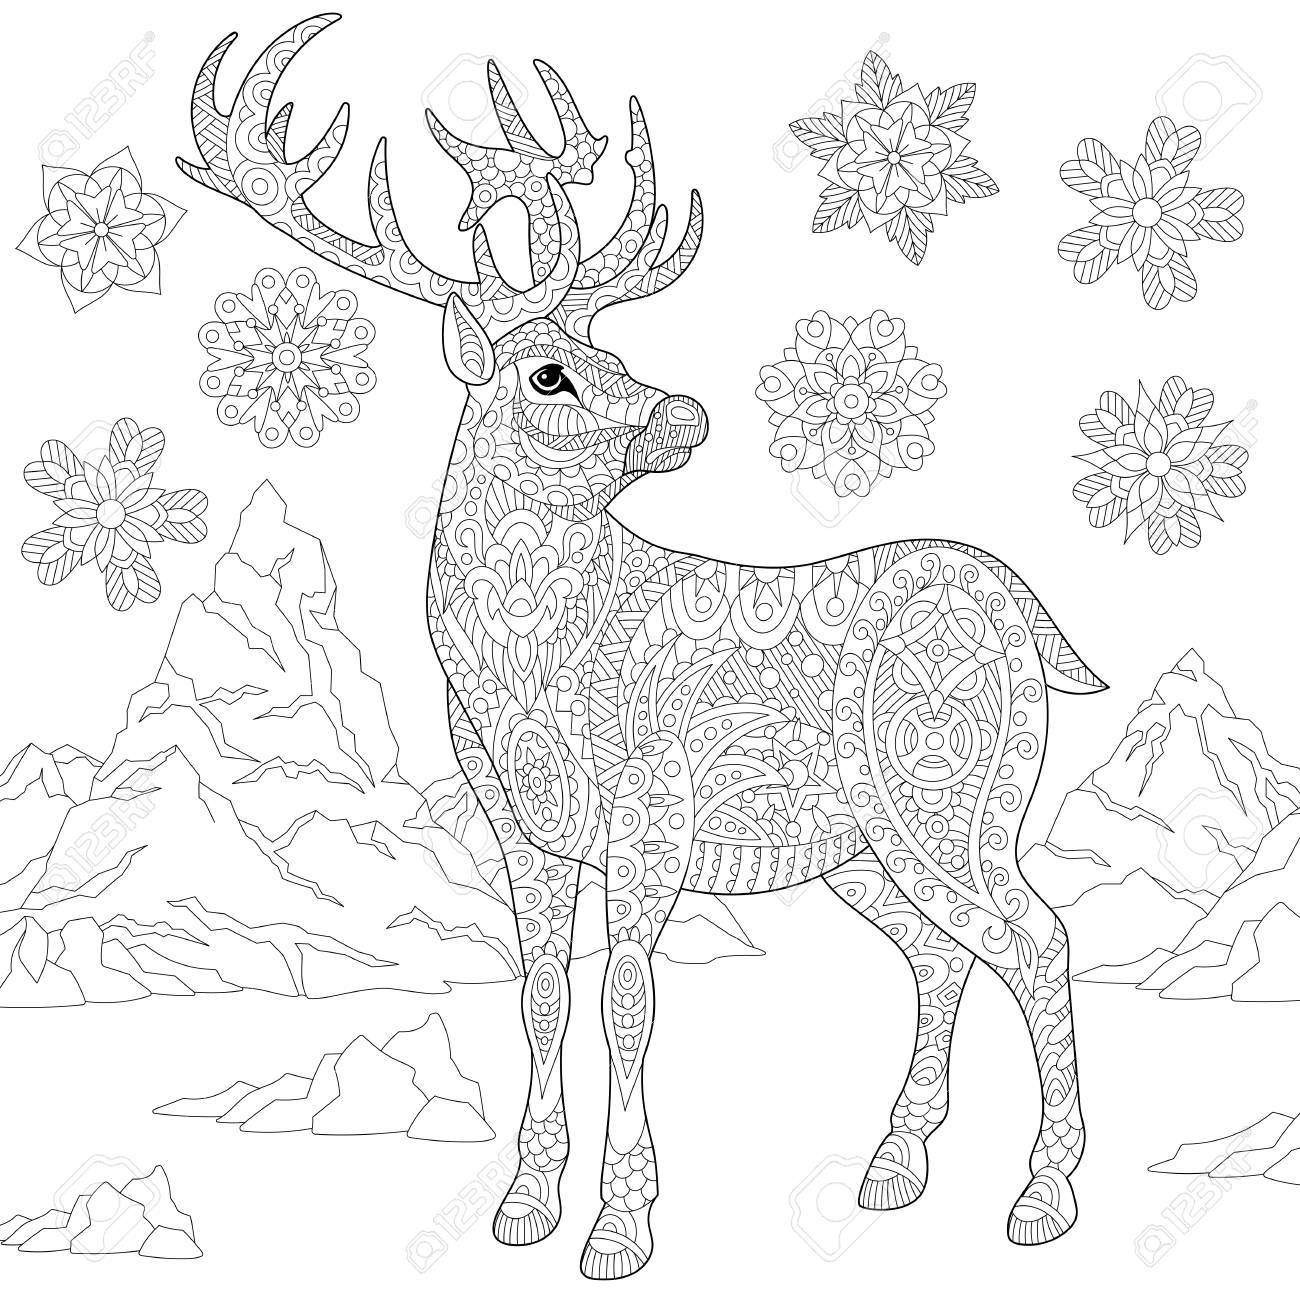 1300x1300 Coloring Page Of Deer (Reindeer) And Winter Snowflakes. Freehand